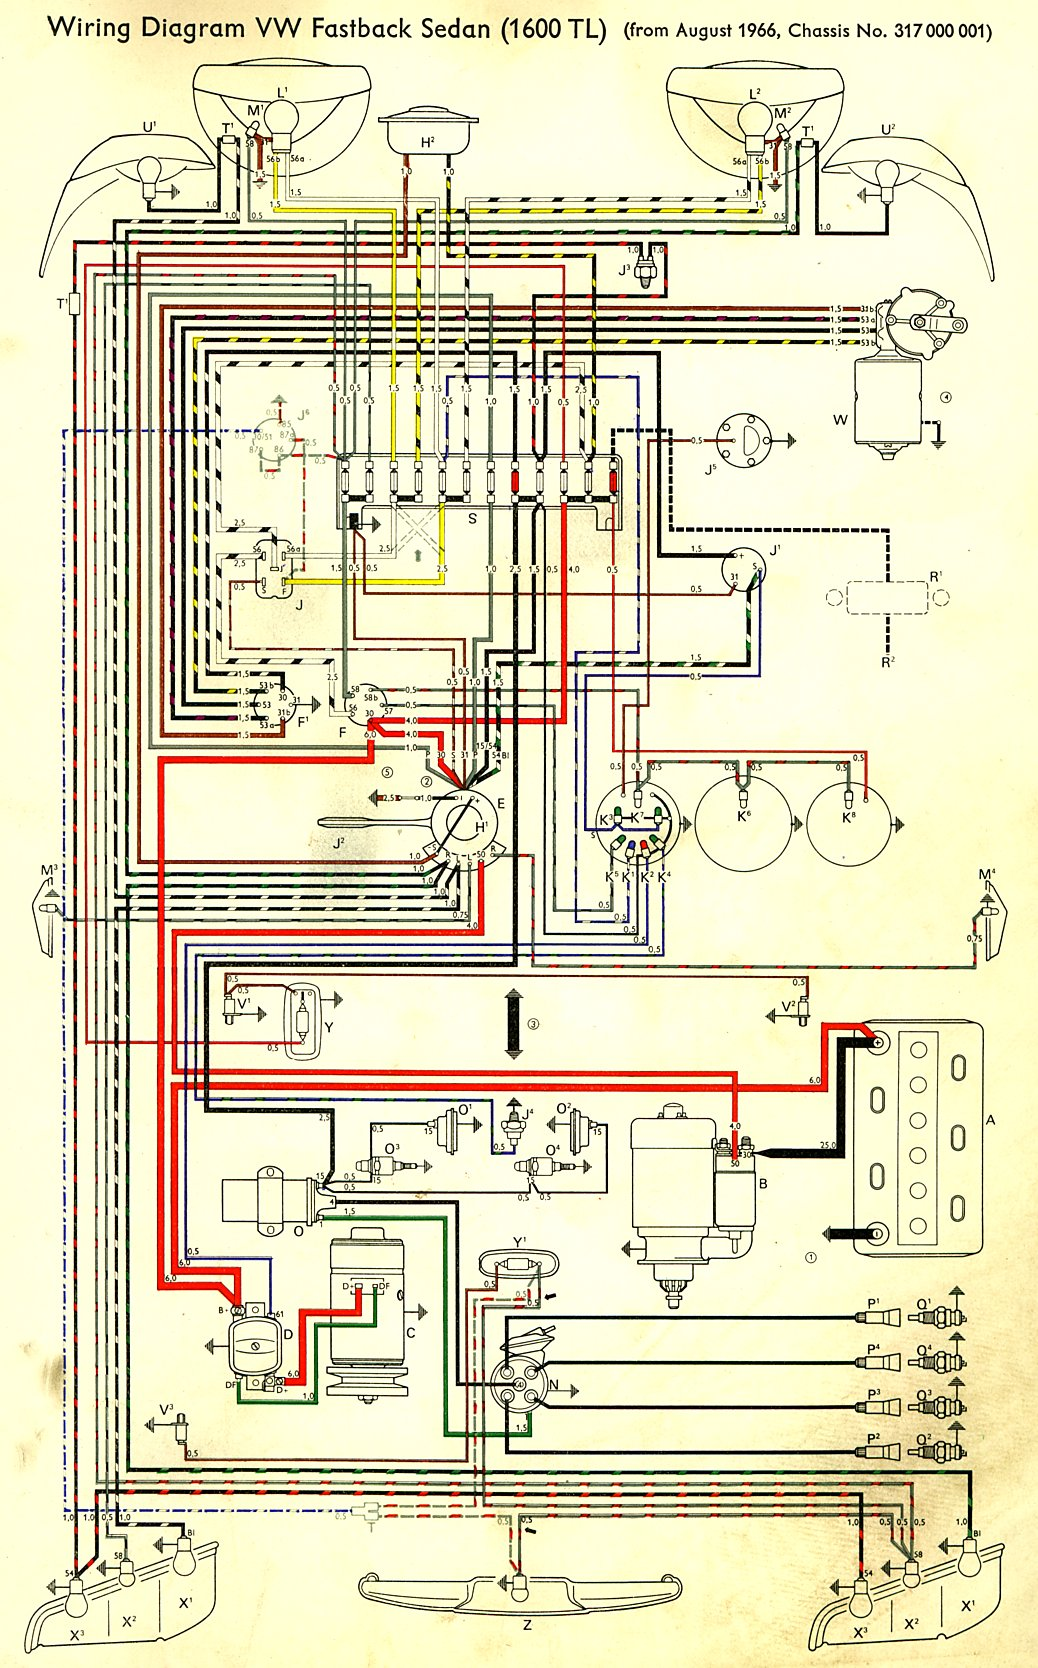 thesamba com type 3 wiring diagrams rh thesamba com vw 1600 coil wiring diagram vw 1600 engine wiring diagram